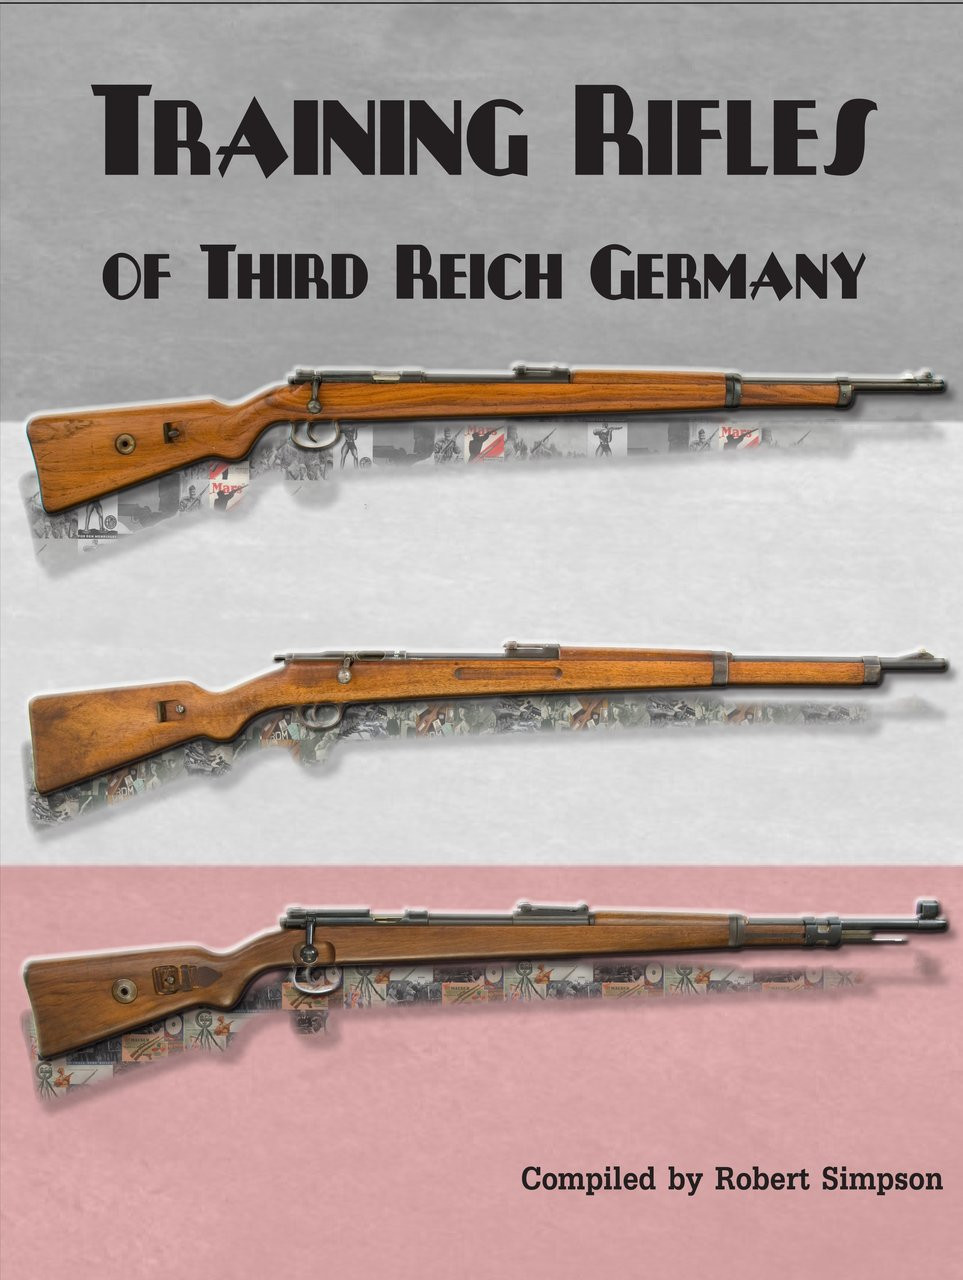 Training Rifles of Third Reich Germany